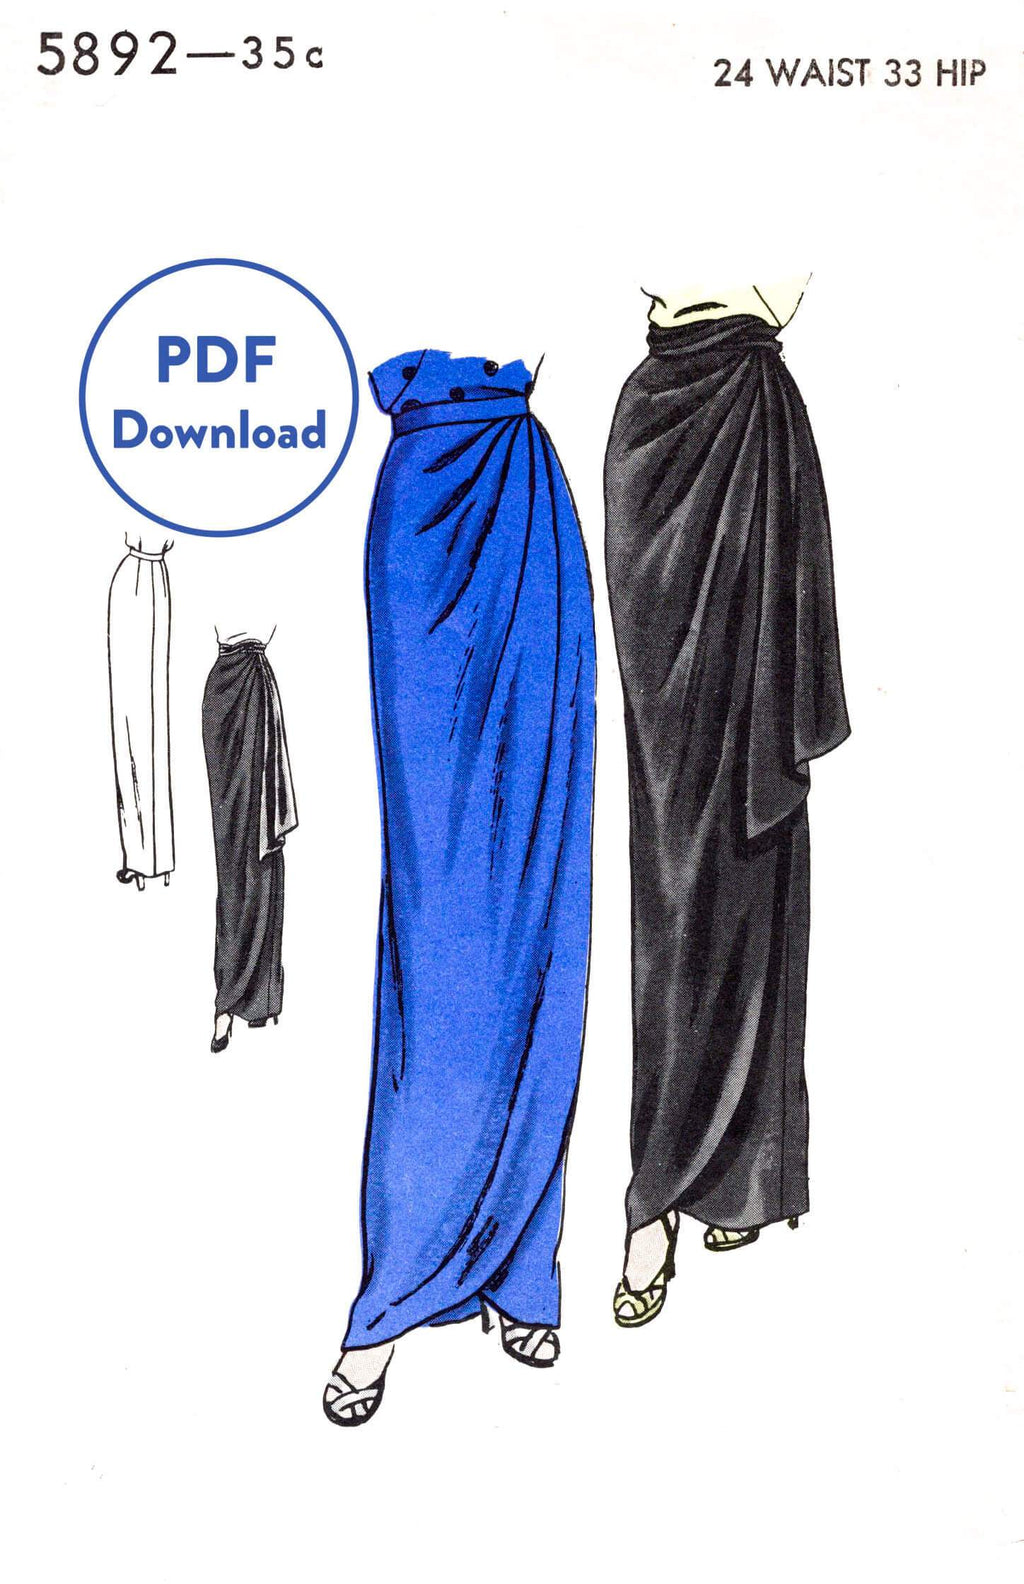 Vogue 5892 1940s film noir skirt vintage sewing pattern 1940 skirt PDF download